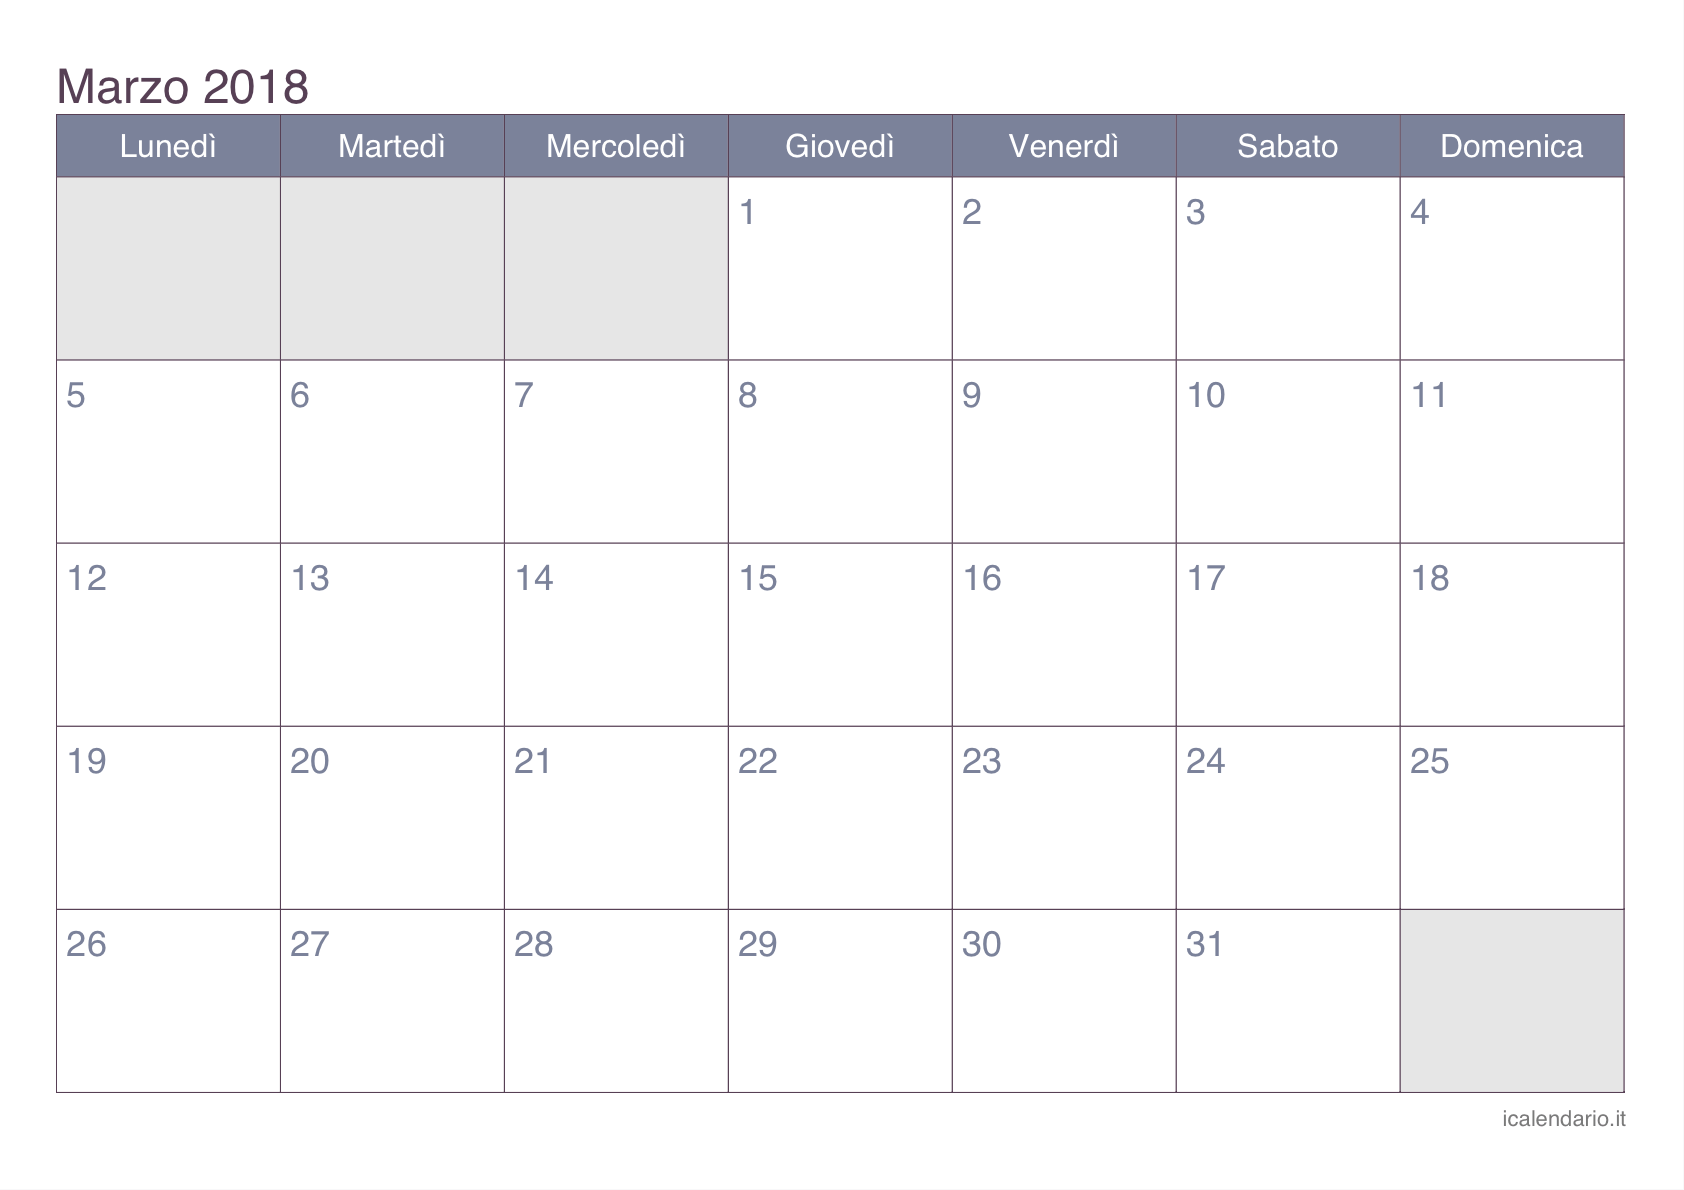 Calendario Marzo 2018 Con Festivita.Calendario Marzo 2018 Da Stampare Icalendario It